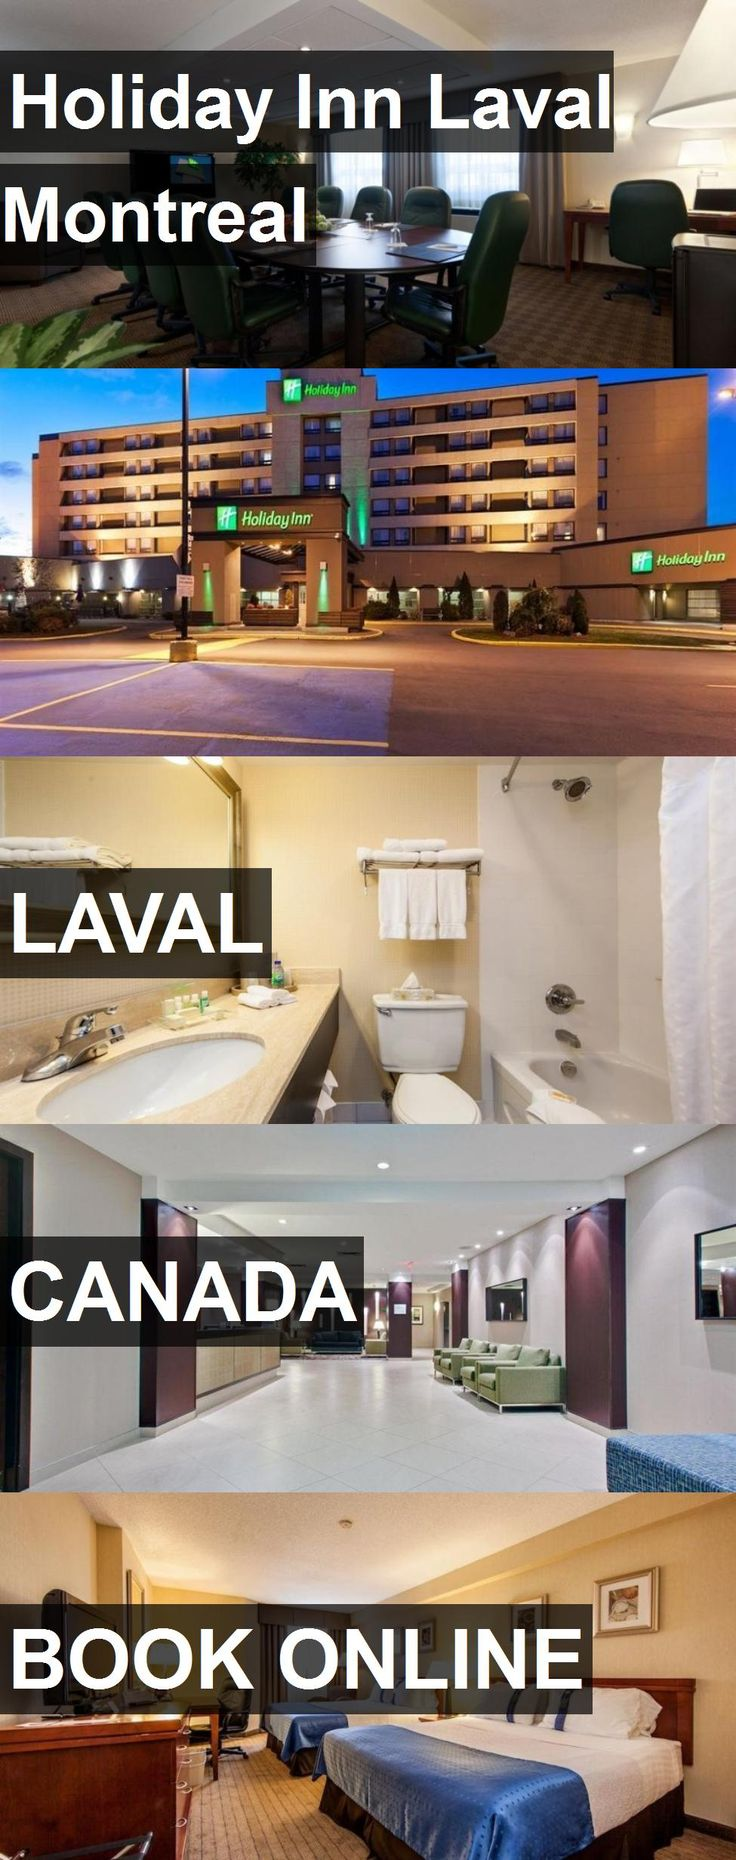 Hotel Holiday Inn Laval Montreal in Laval, Canada. For more information, photos, reviews and best prices please follow the link. #Canada #Laval #hotel #travel #vacation